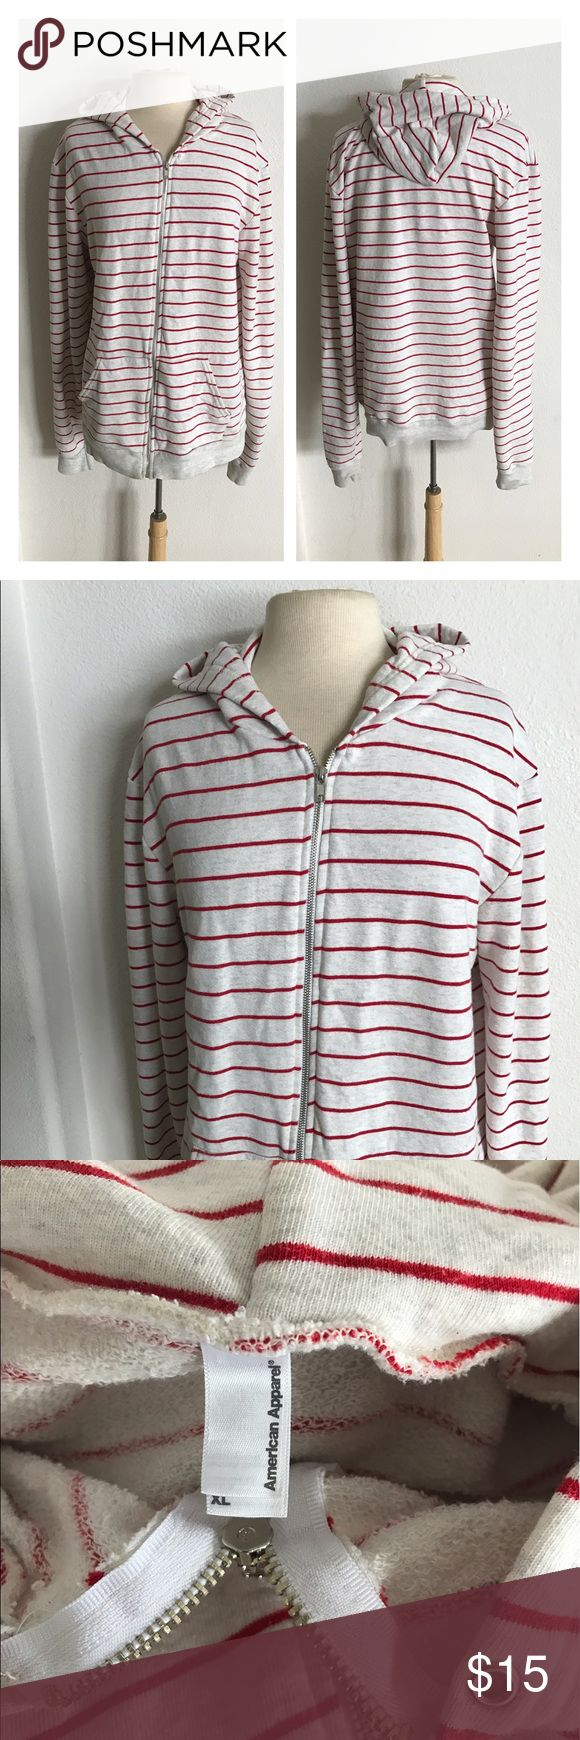 "American Apparel men's striped zip up hoodie American Apparel red/ beige striped zip up hoodie. Men's hoodie size XL. Owned and worn by me and fit perfectly when I was a 14/16. Measures 29"" long with a 42"" bust. 70% cotton/ 30% polyester. This has some weight to it! Two functional front pockets. Missing drawstring. This does have some pilling throughout which has been reflected in the price.  💲Reasonable offers accepted ✅Bundle offers American Apparel Shirts Sweatshirts & Hoodies"